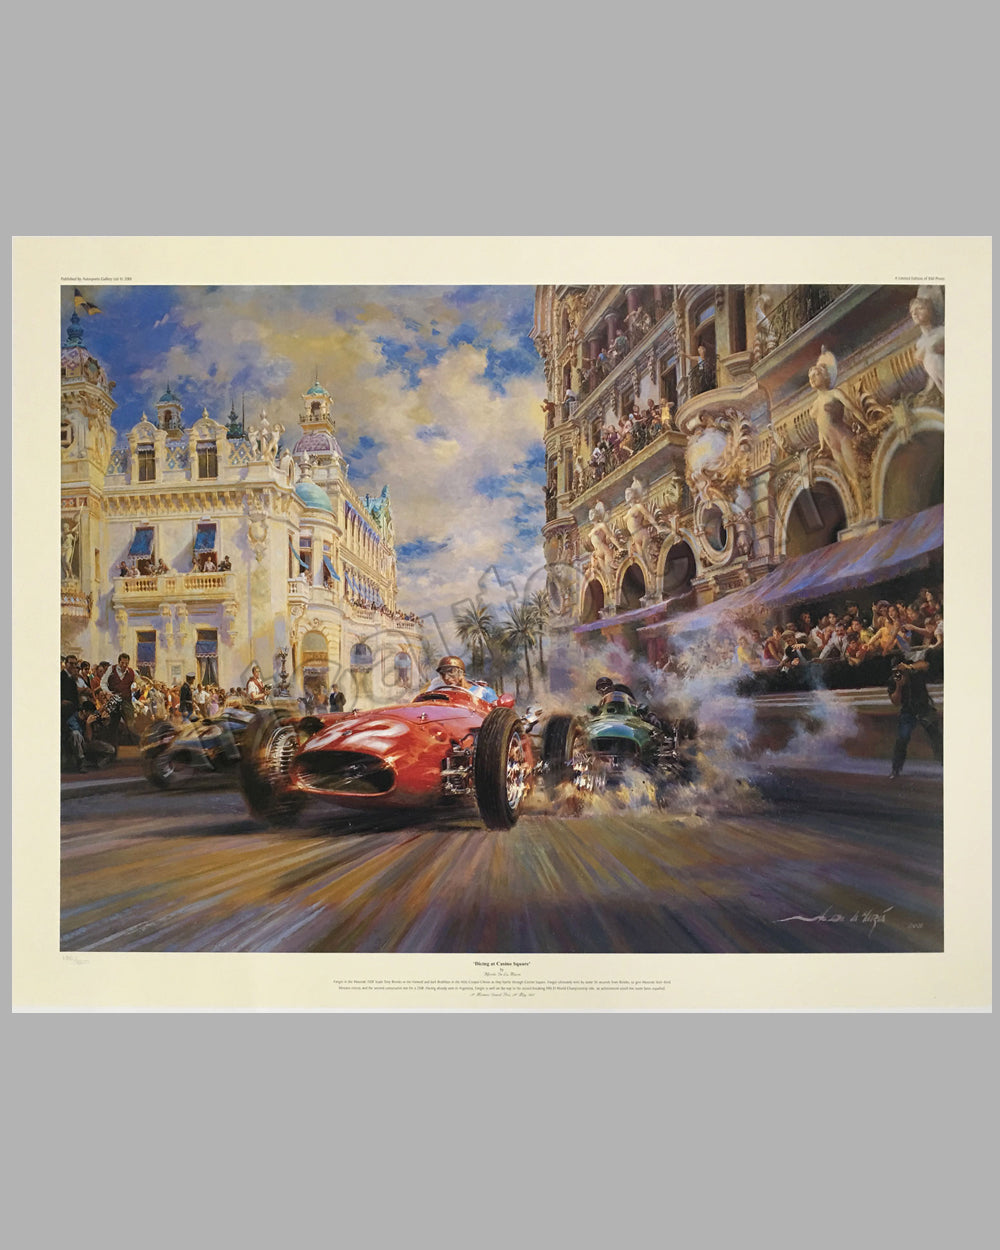 Dicing at Casino Square print by Alfredo de la Maria